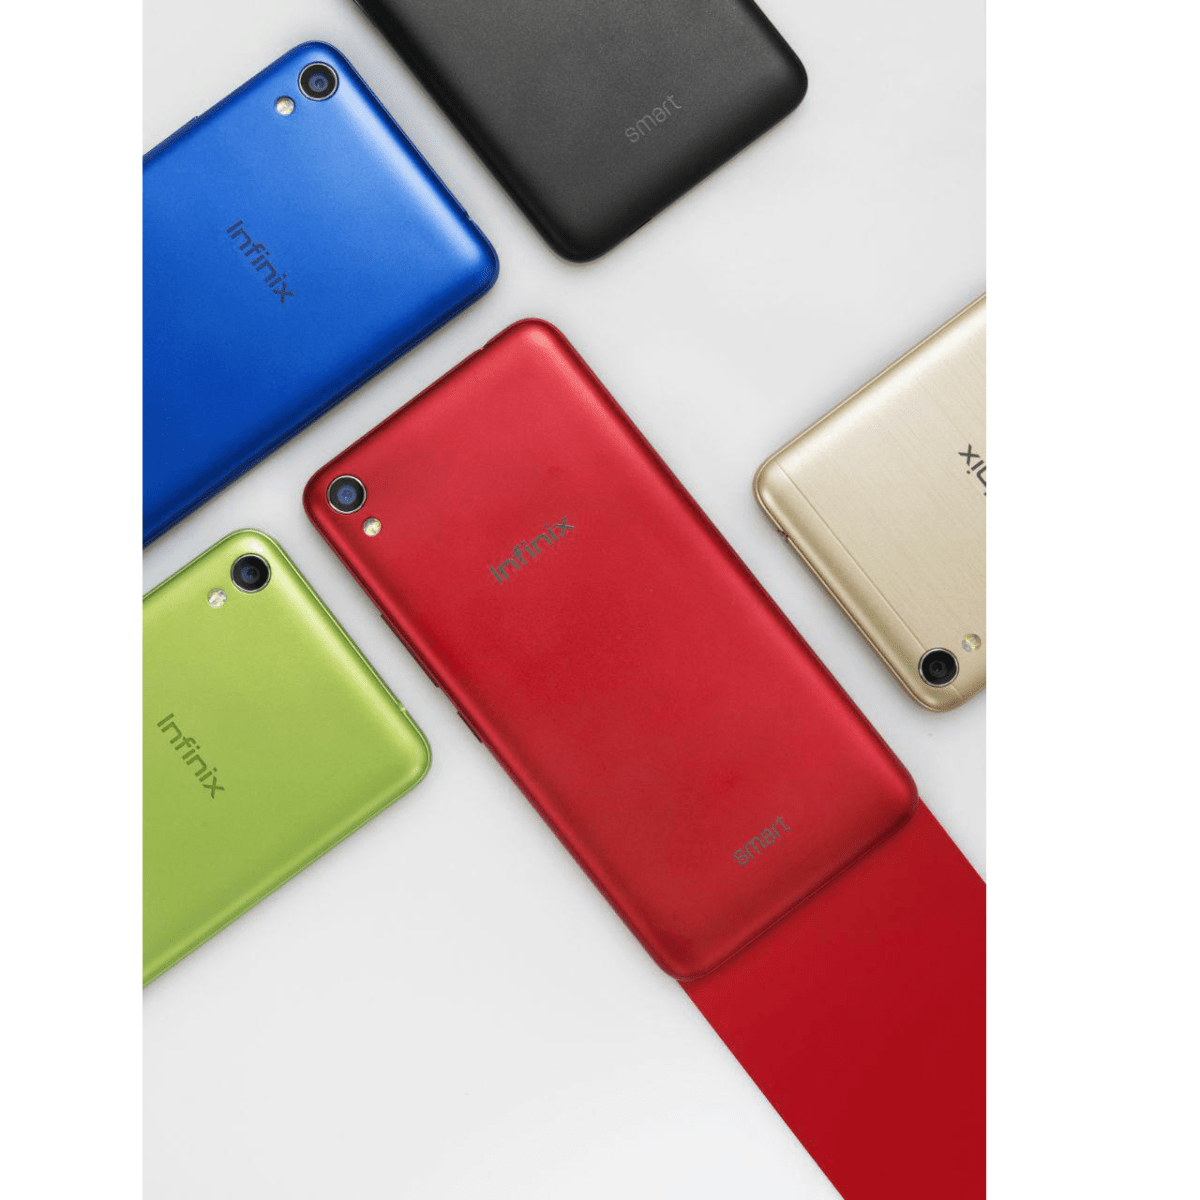 Infinix SMART X5010 Specifications and Price in Kenya